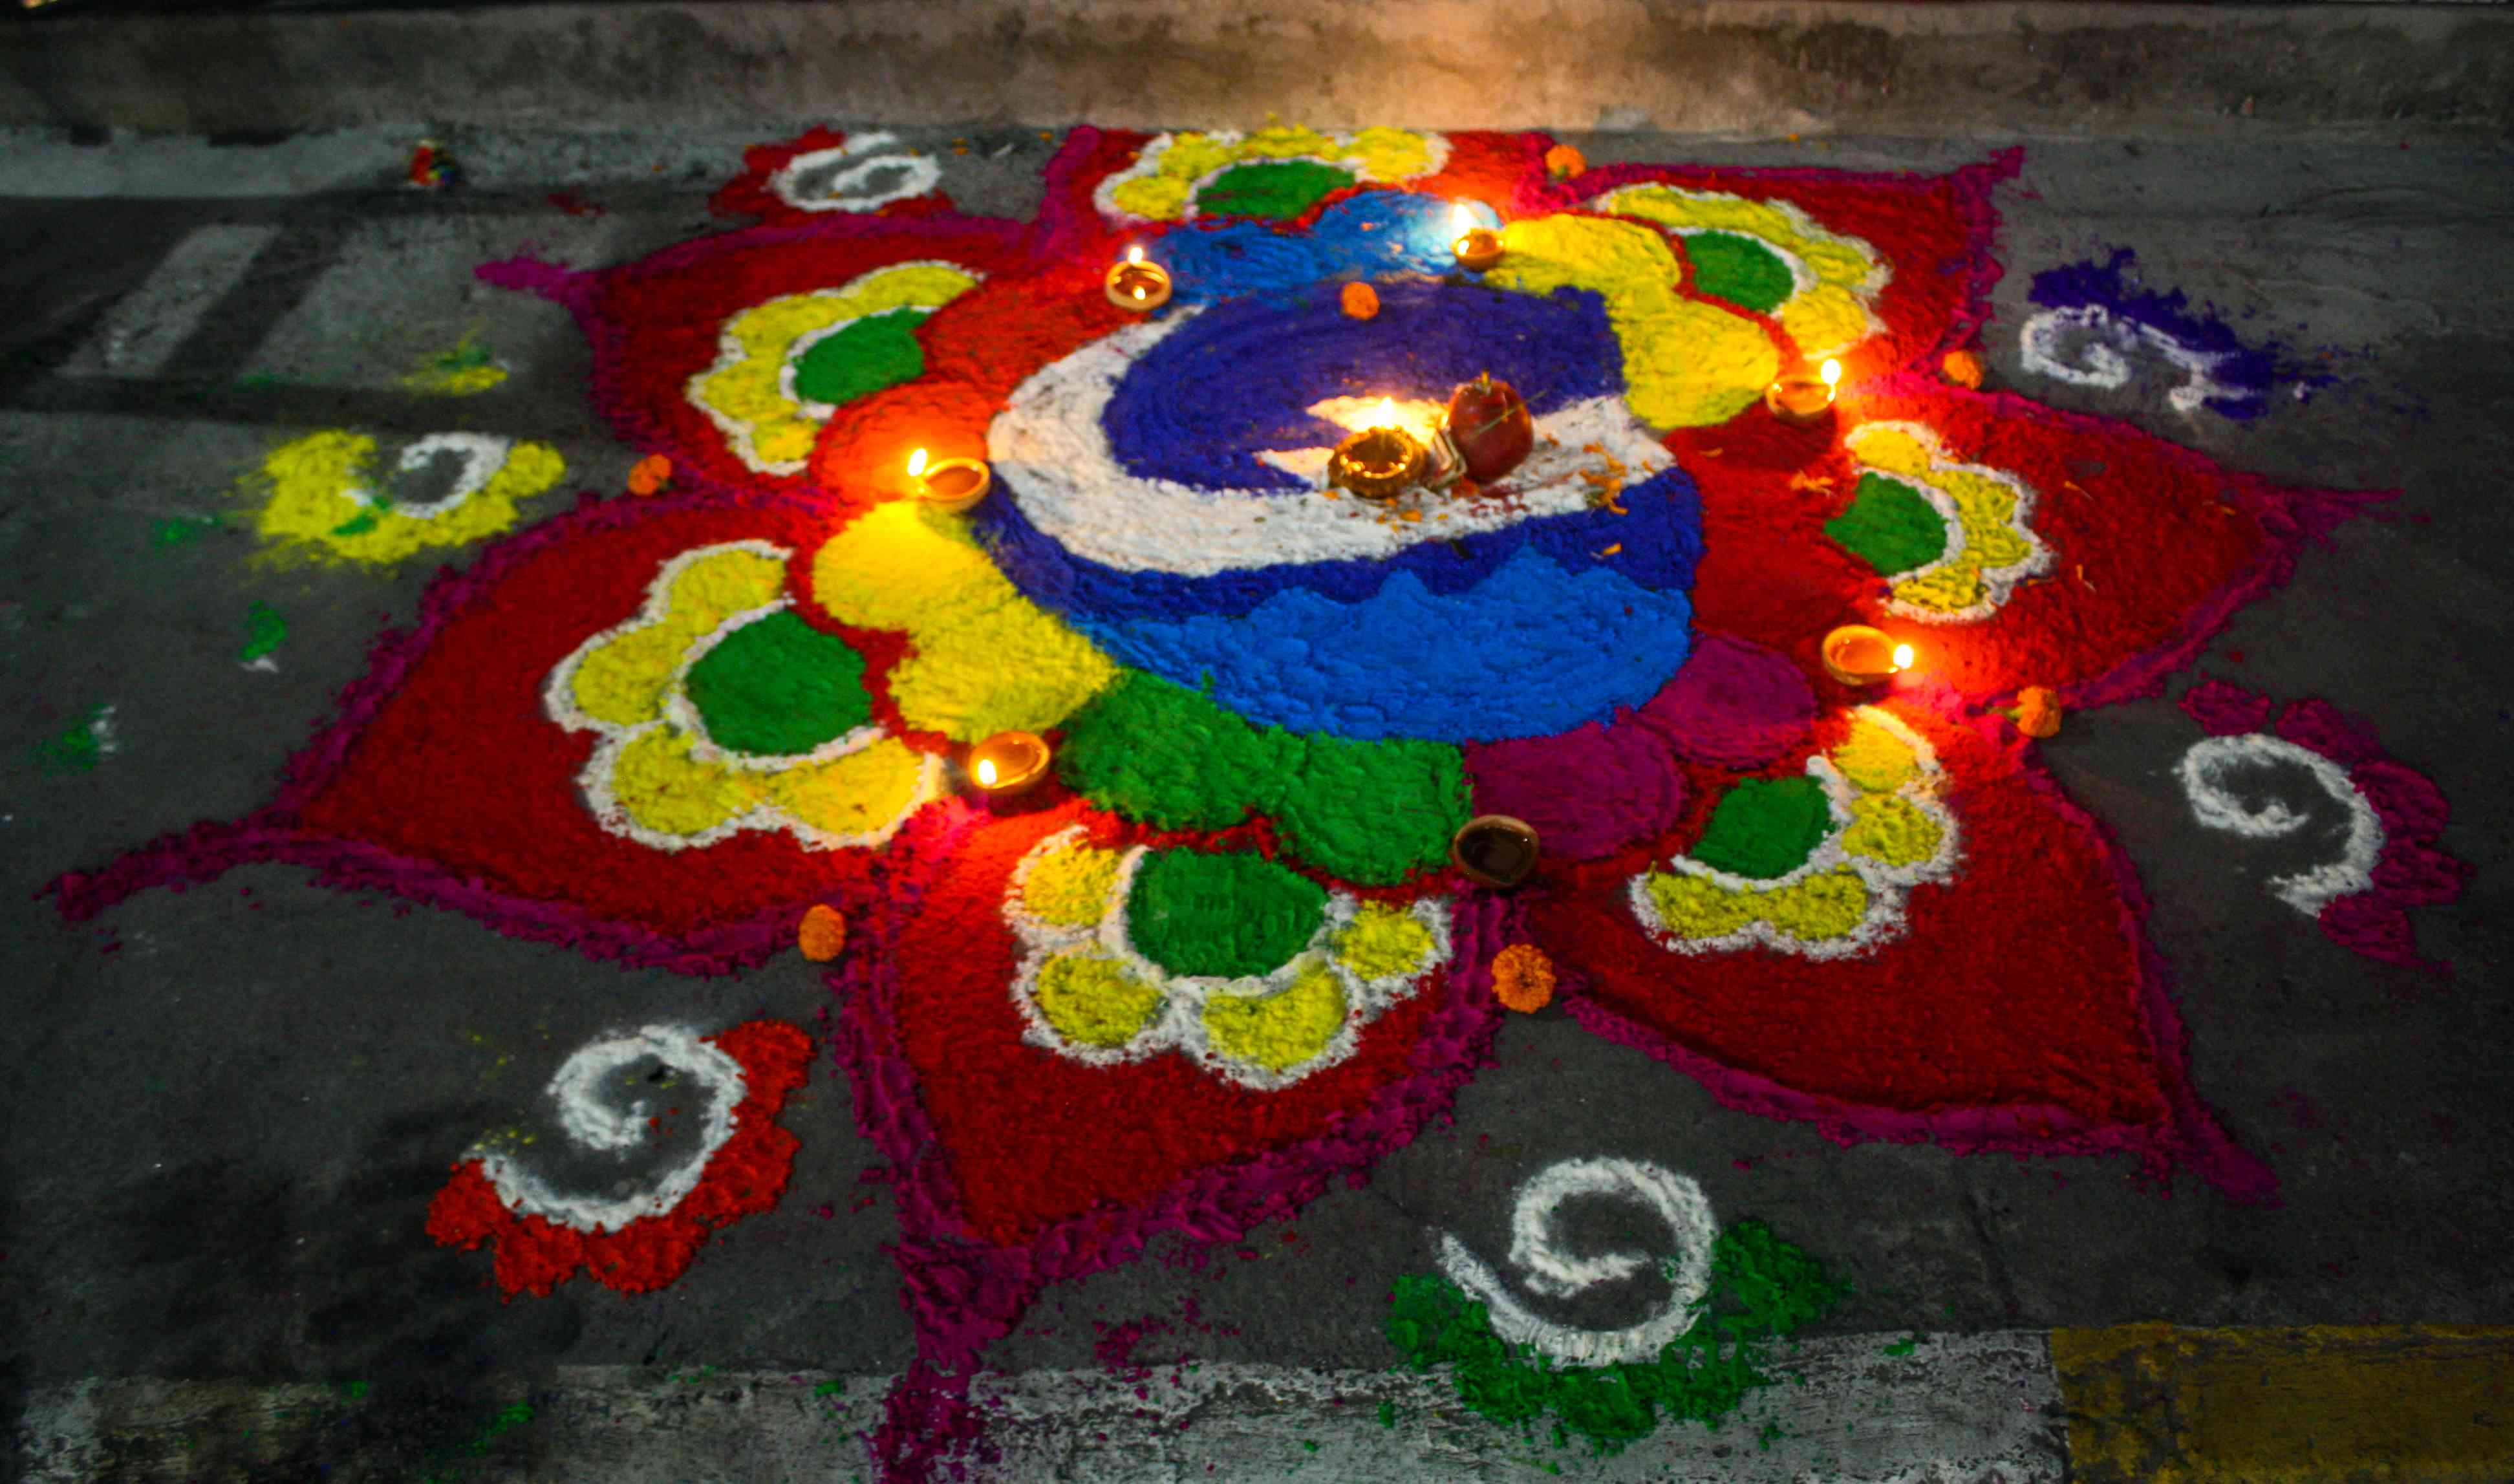 colorful powder design on the street surrounded by candles